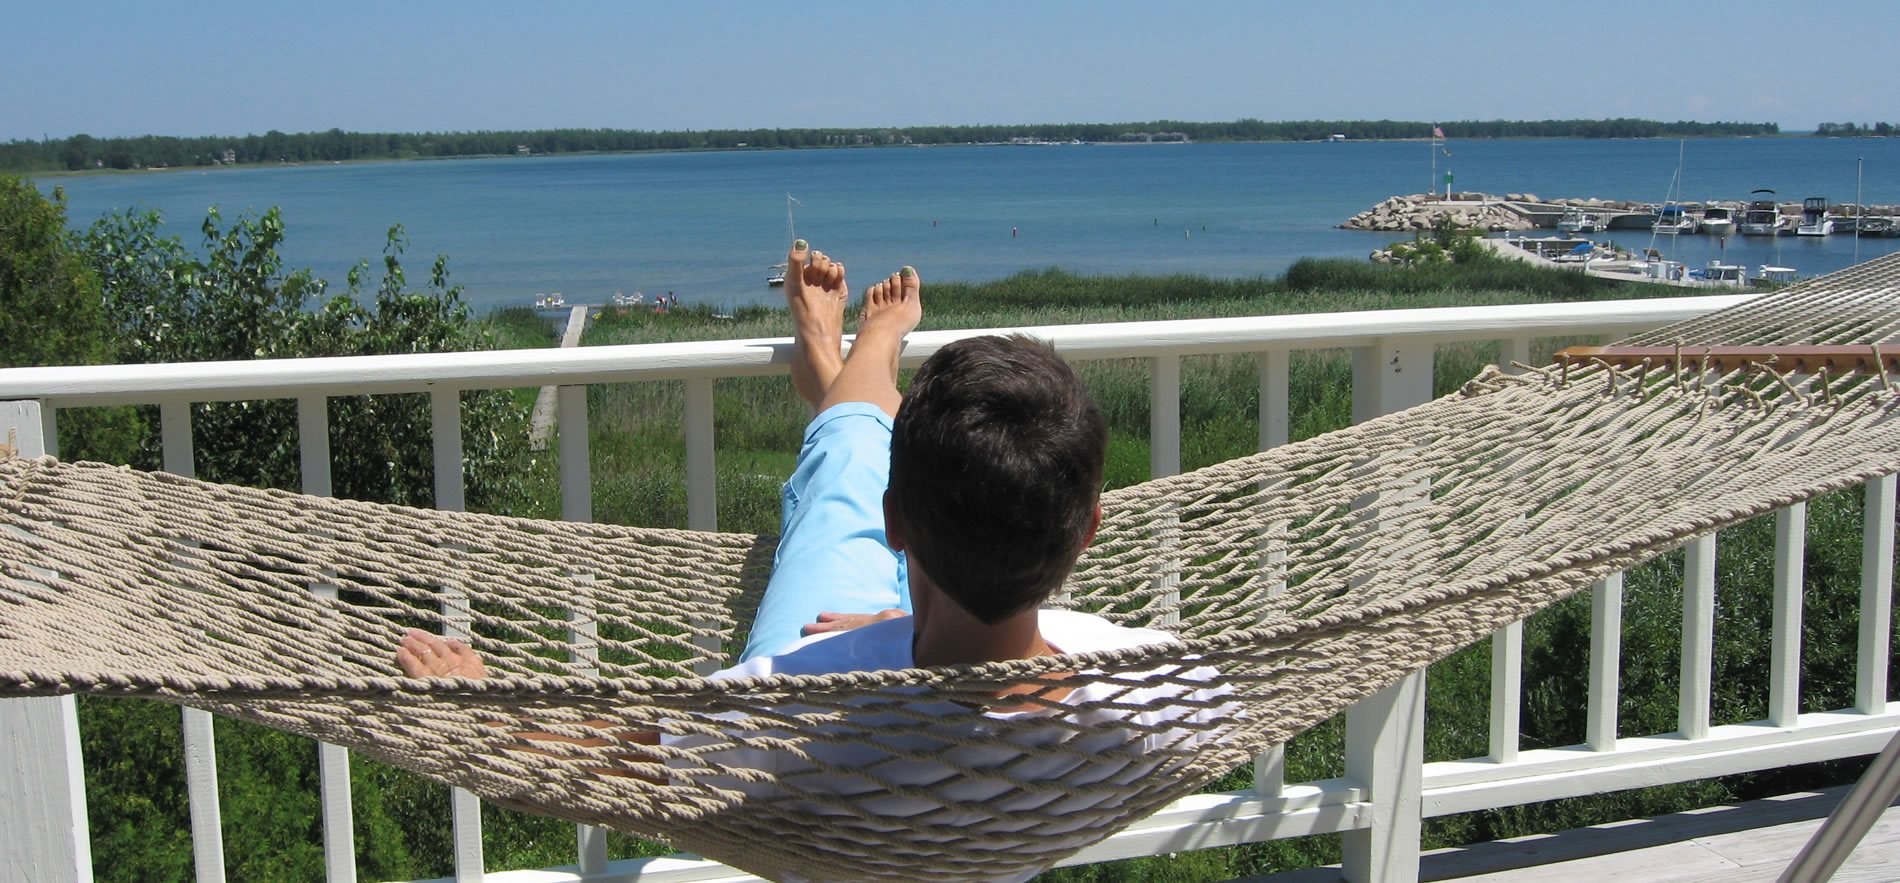 Blacksmith Inn on the Shore: Bed and Breakfast in Door County